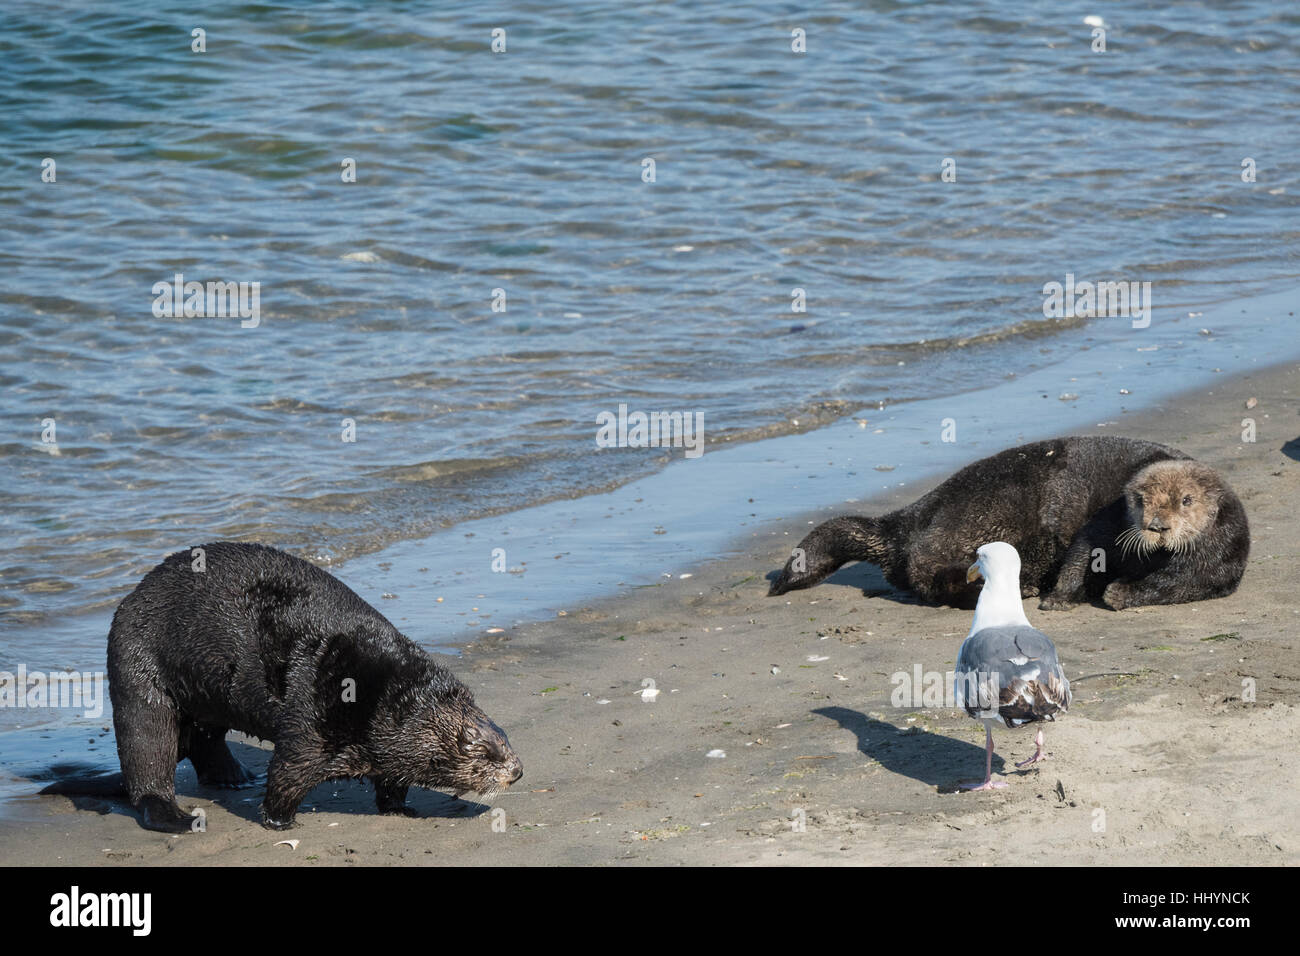 California sea otter or southern sea otter, Enhydra lutris nereis, comes ashore to bask on the beach with other - Stock Image